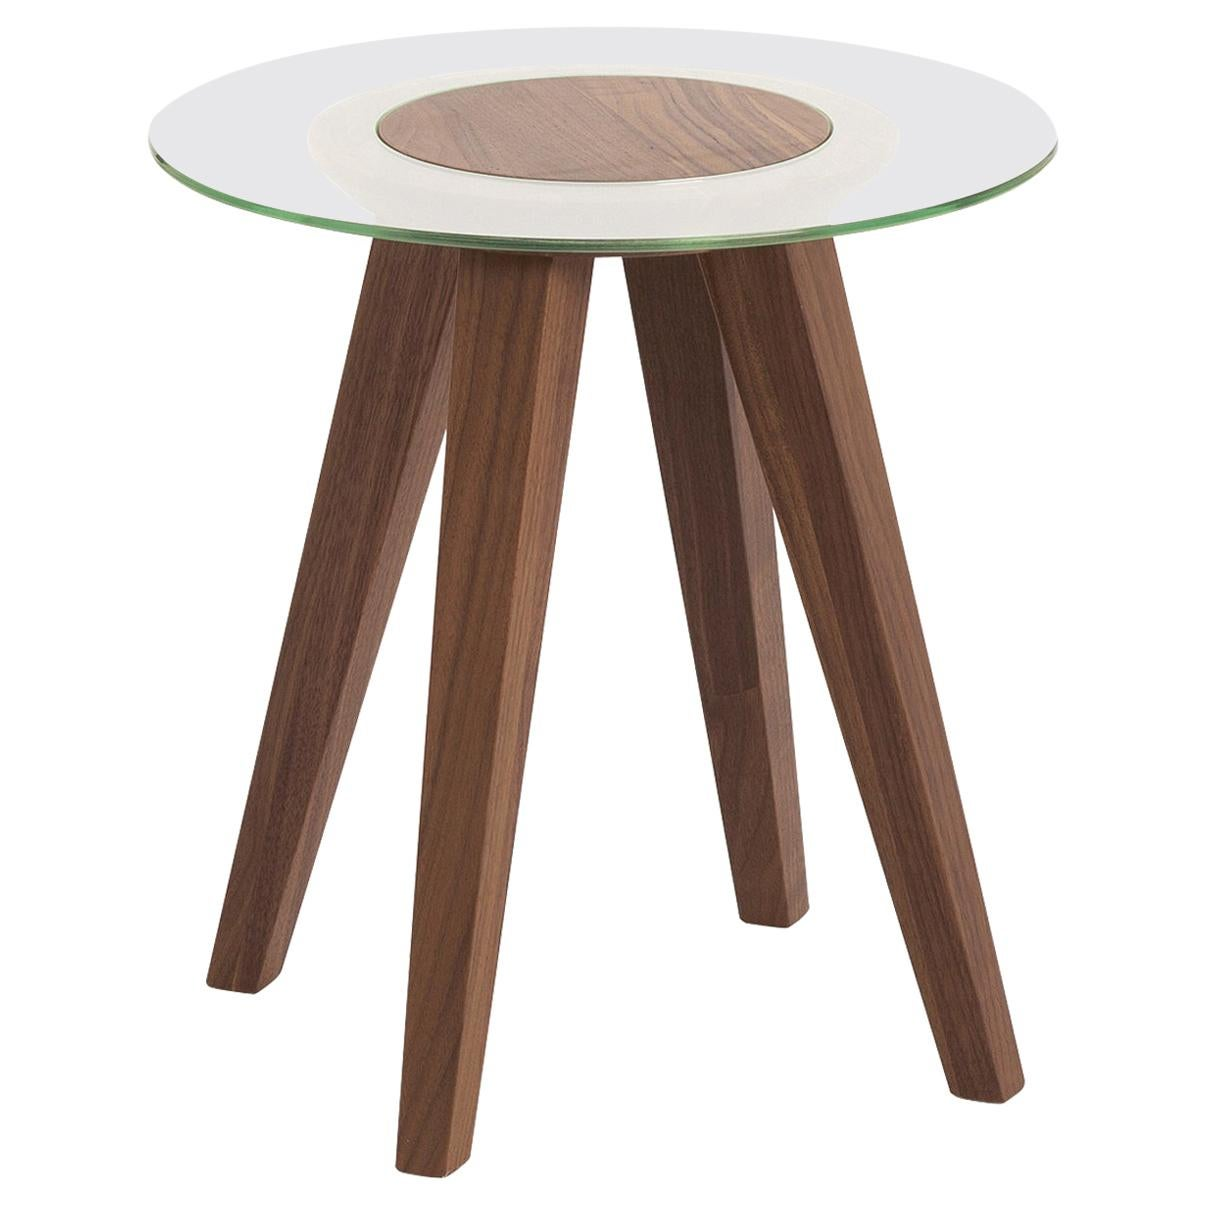 Attesa Tall Side Table with Glass Top